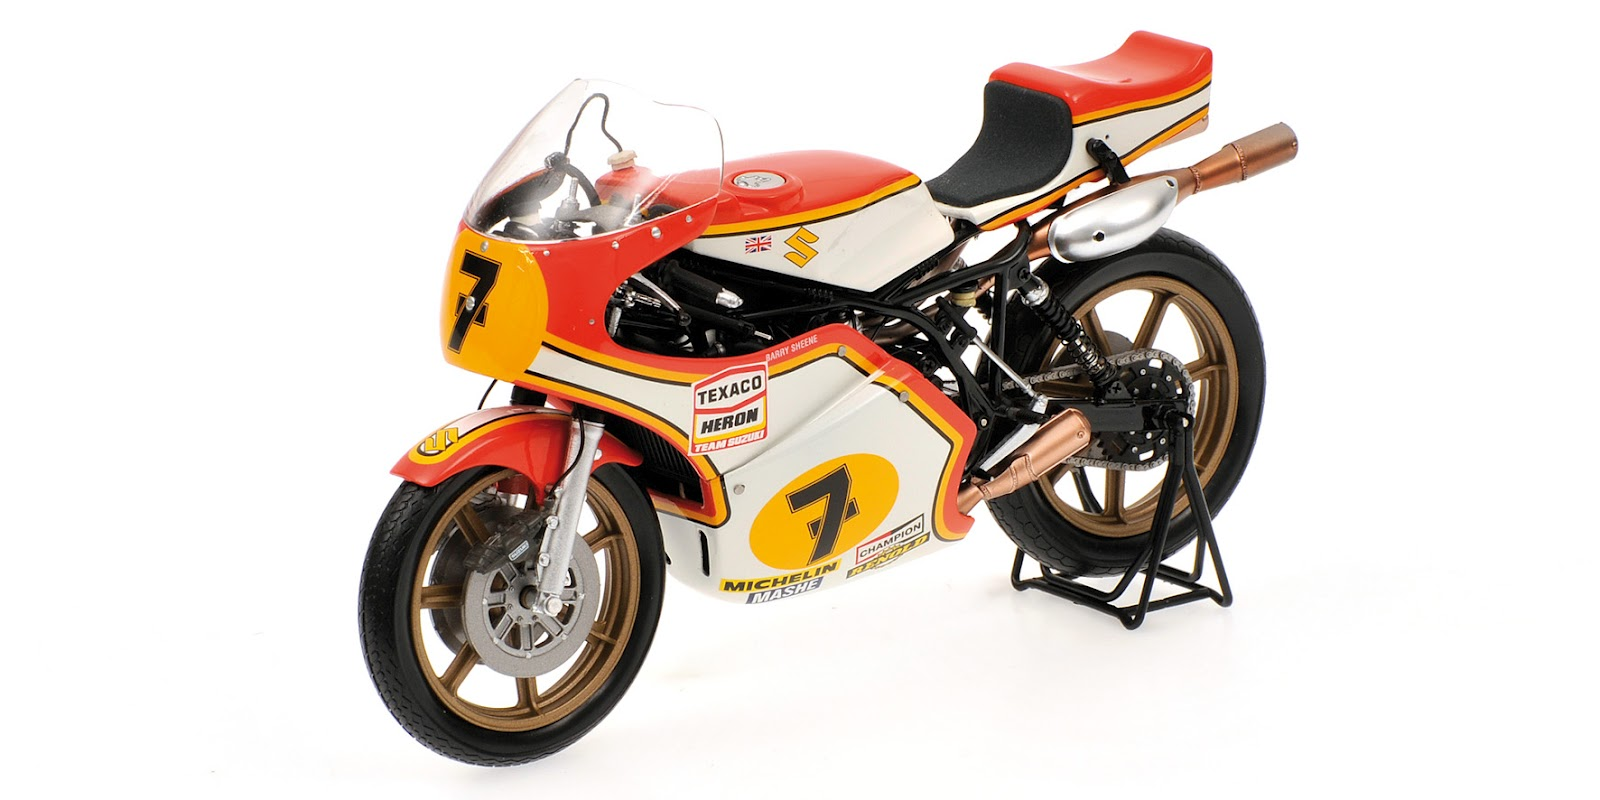 racing scale models suzuki rg 500 b sheene 1976 by minichamps. Black Bedroom Furniture Sets. Home Design Ideas